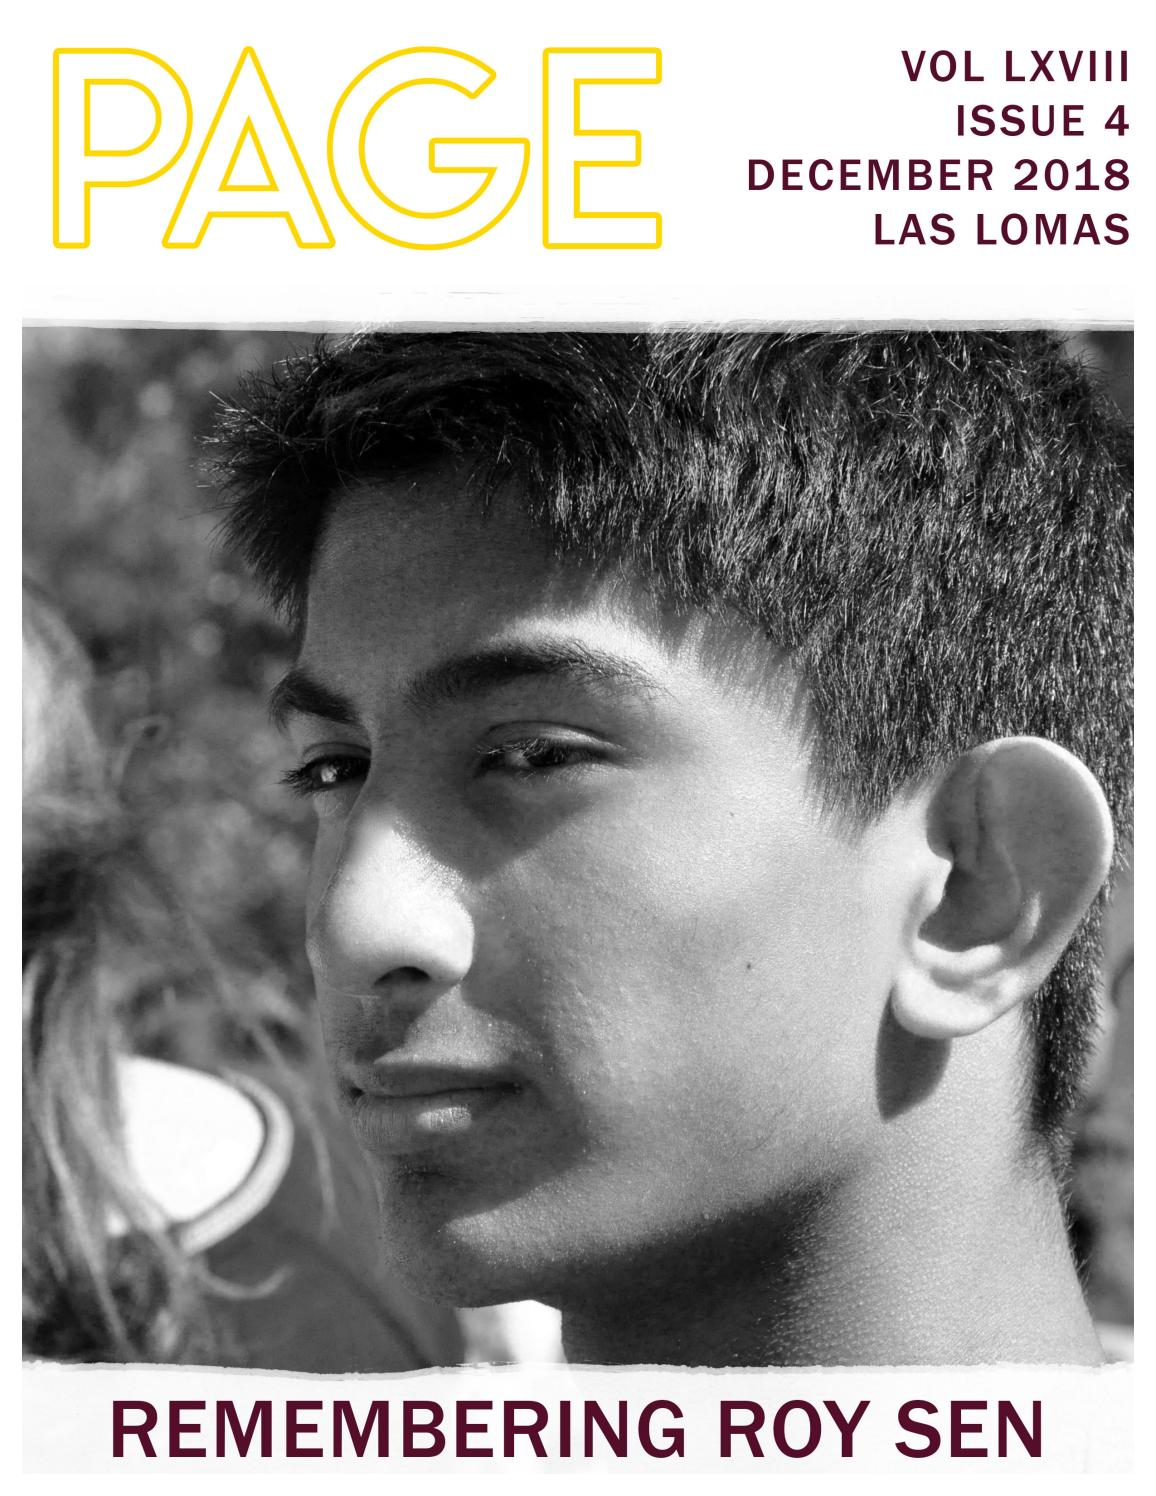 Volume 68 Issue 4 By Las Lomas Page Issuu